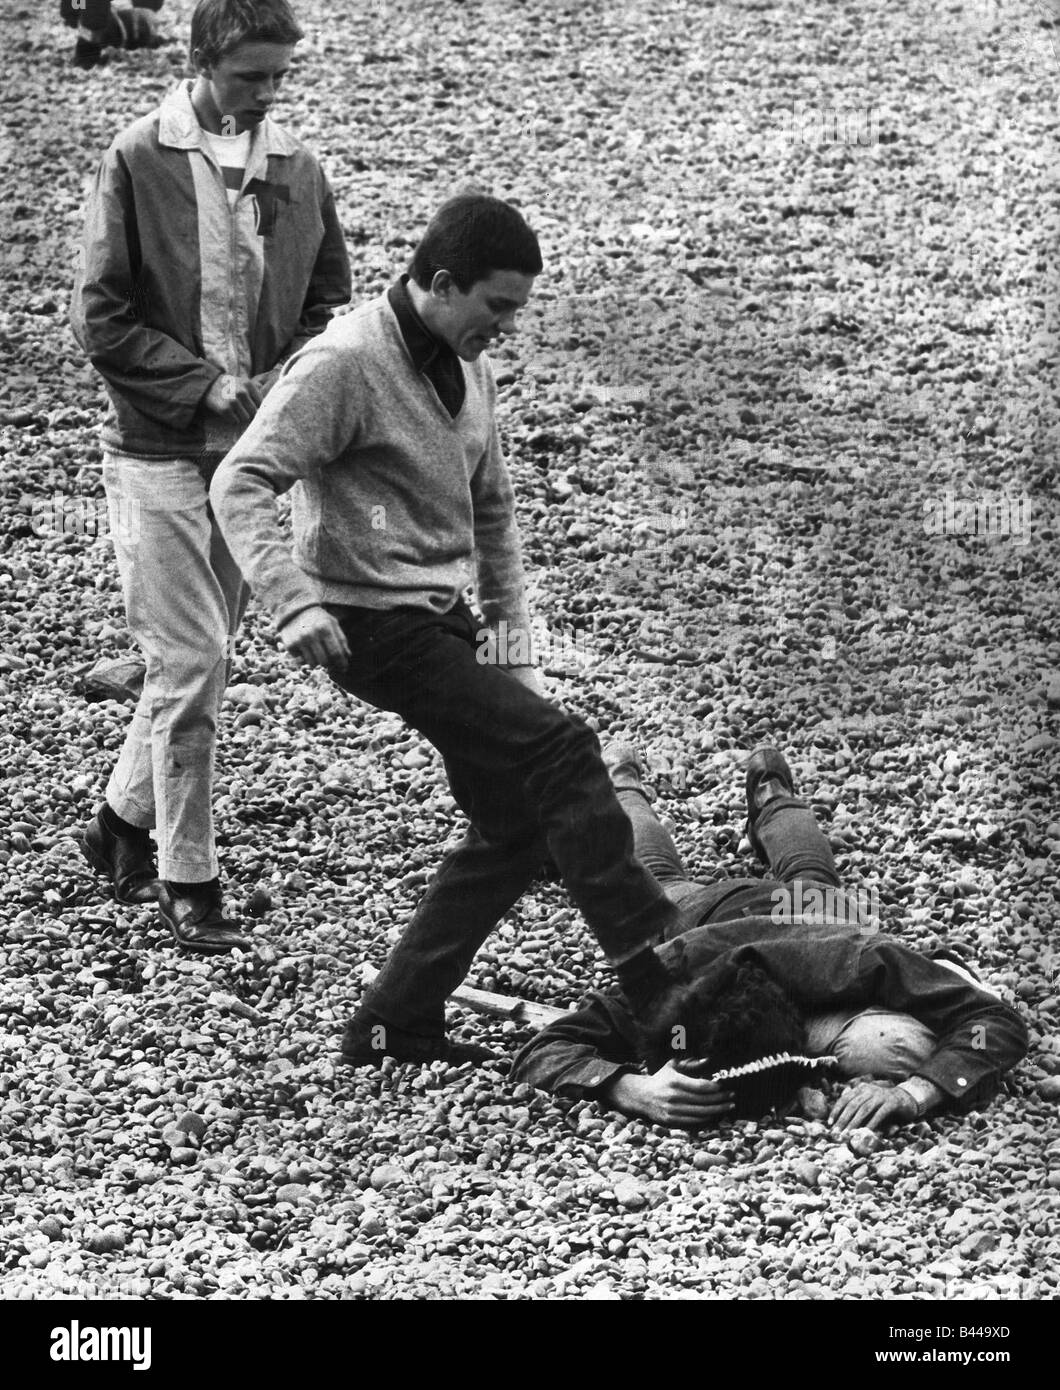 Youth Mods and Rockers Brighton Beach Fight May 1964 A moment of ...